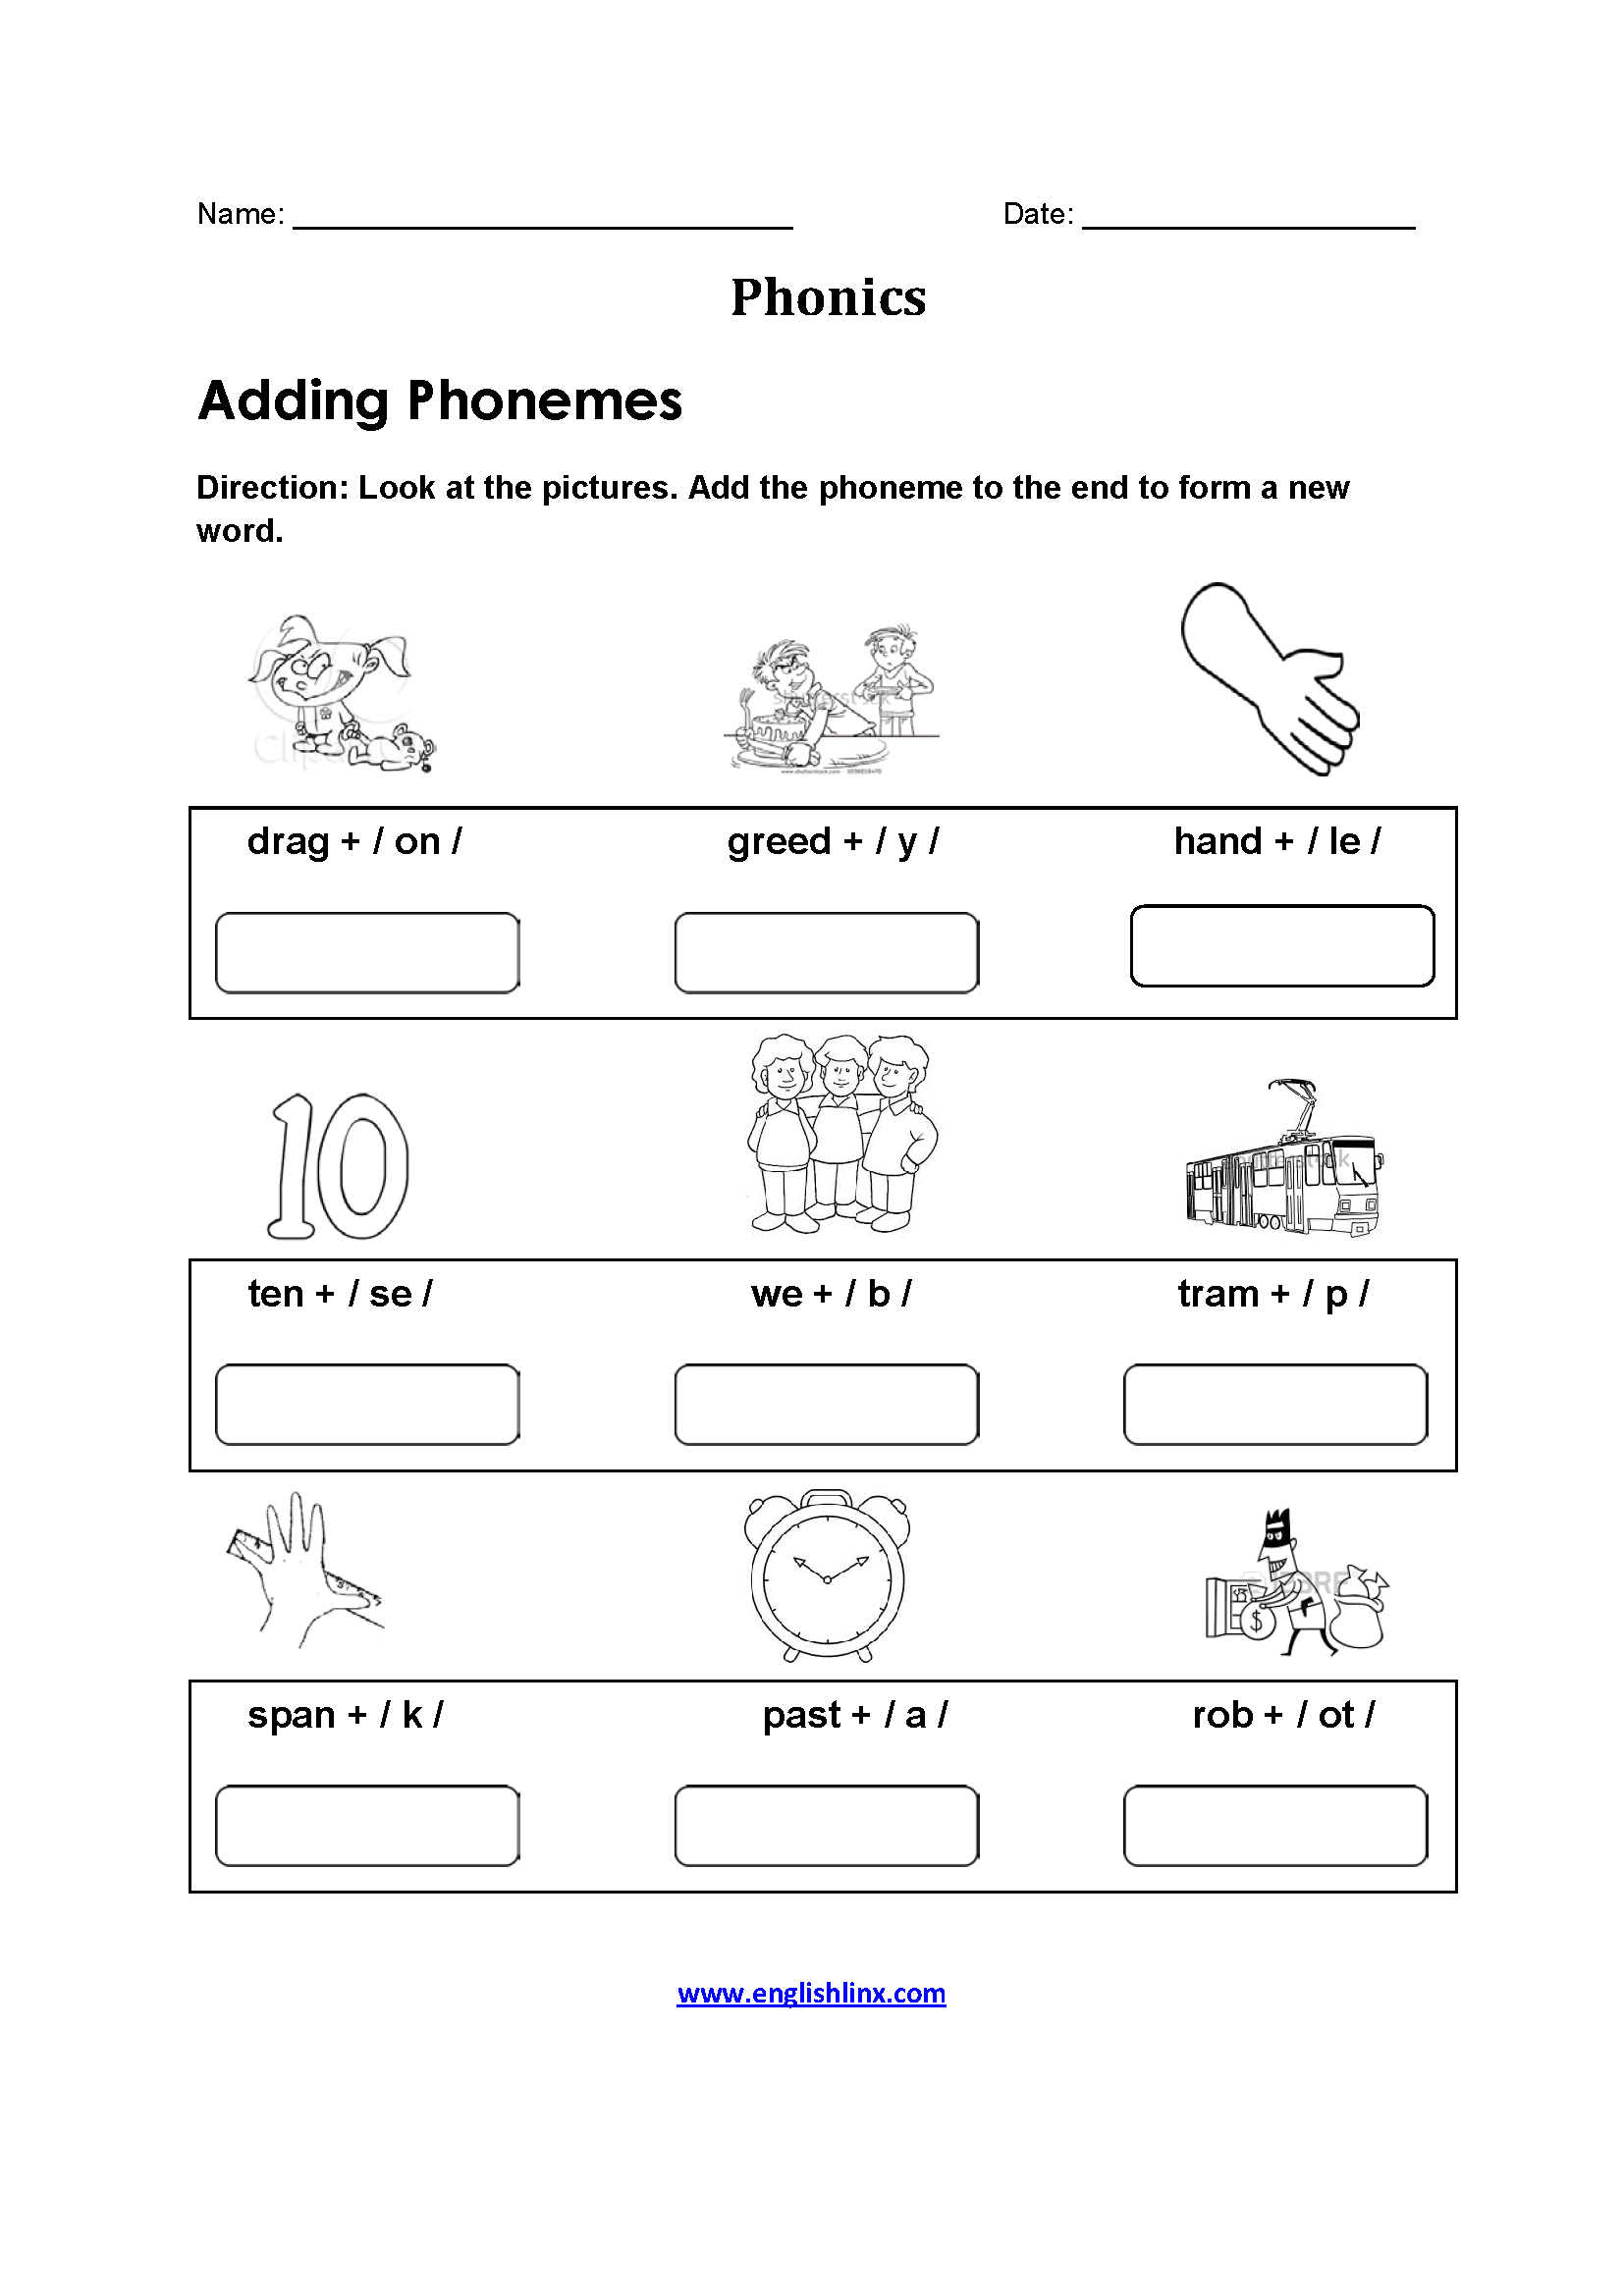 Adding Phonemes Phonics Worksheets